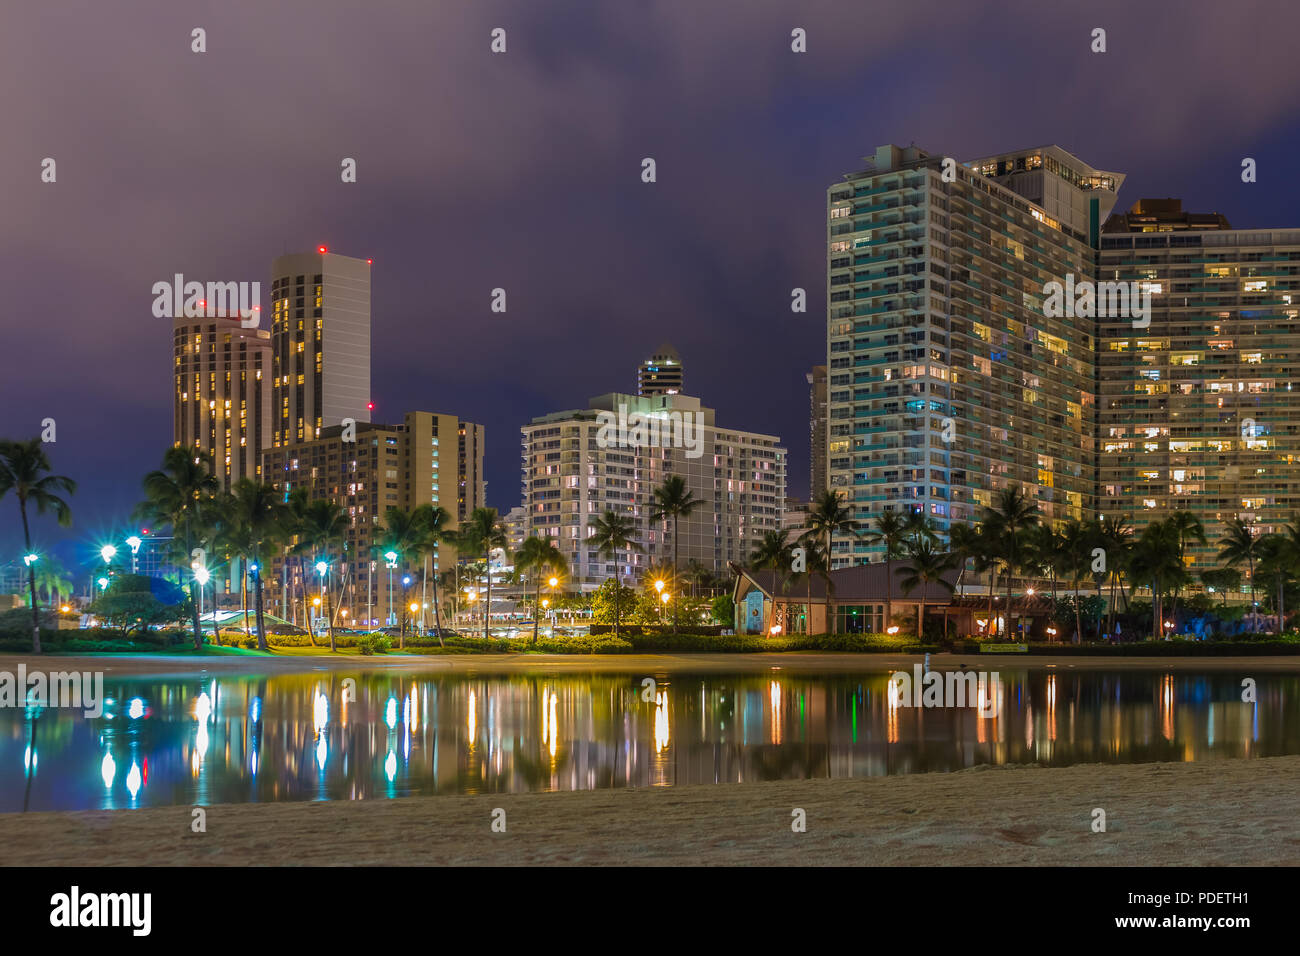 Night view of Waikiki Beach and Diamond Head in Honolulu at night in Hawaii, USA - Stock Image